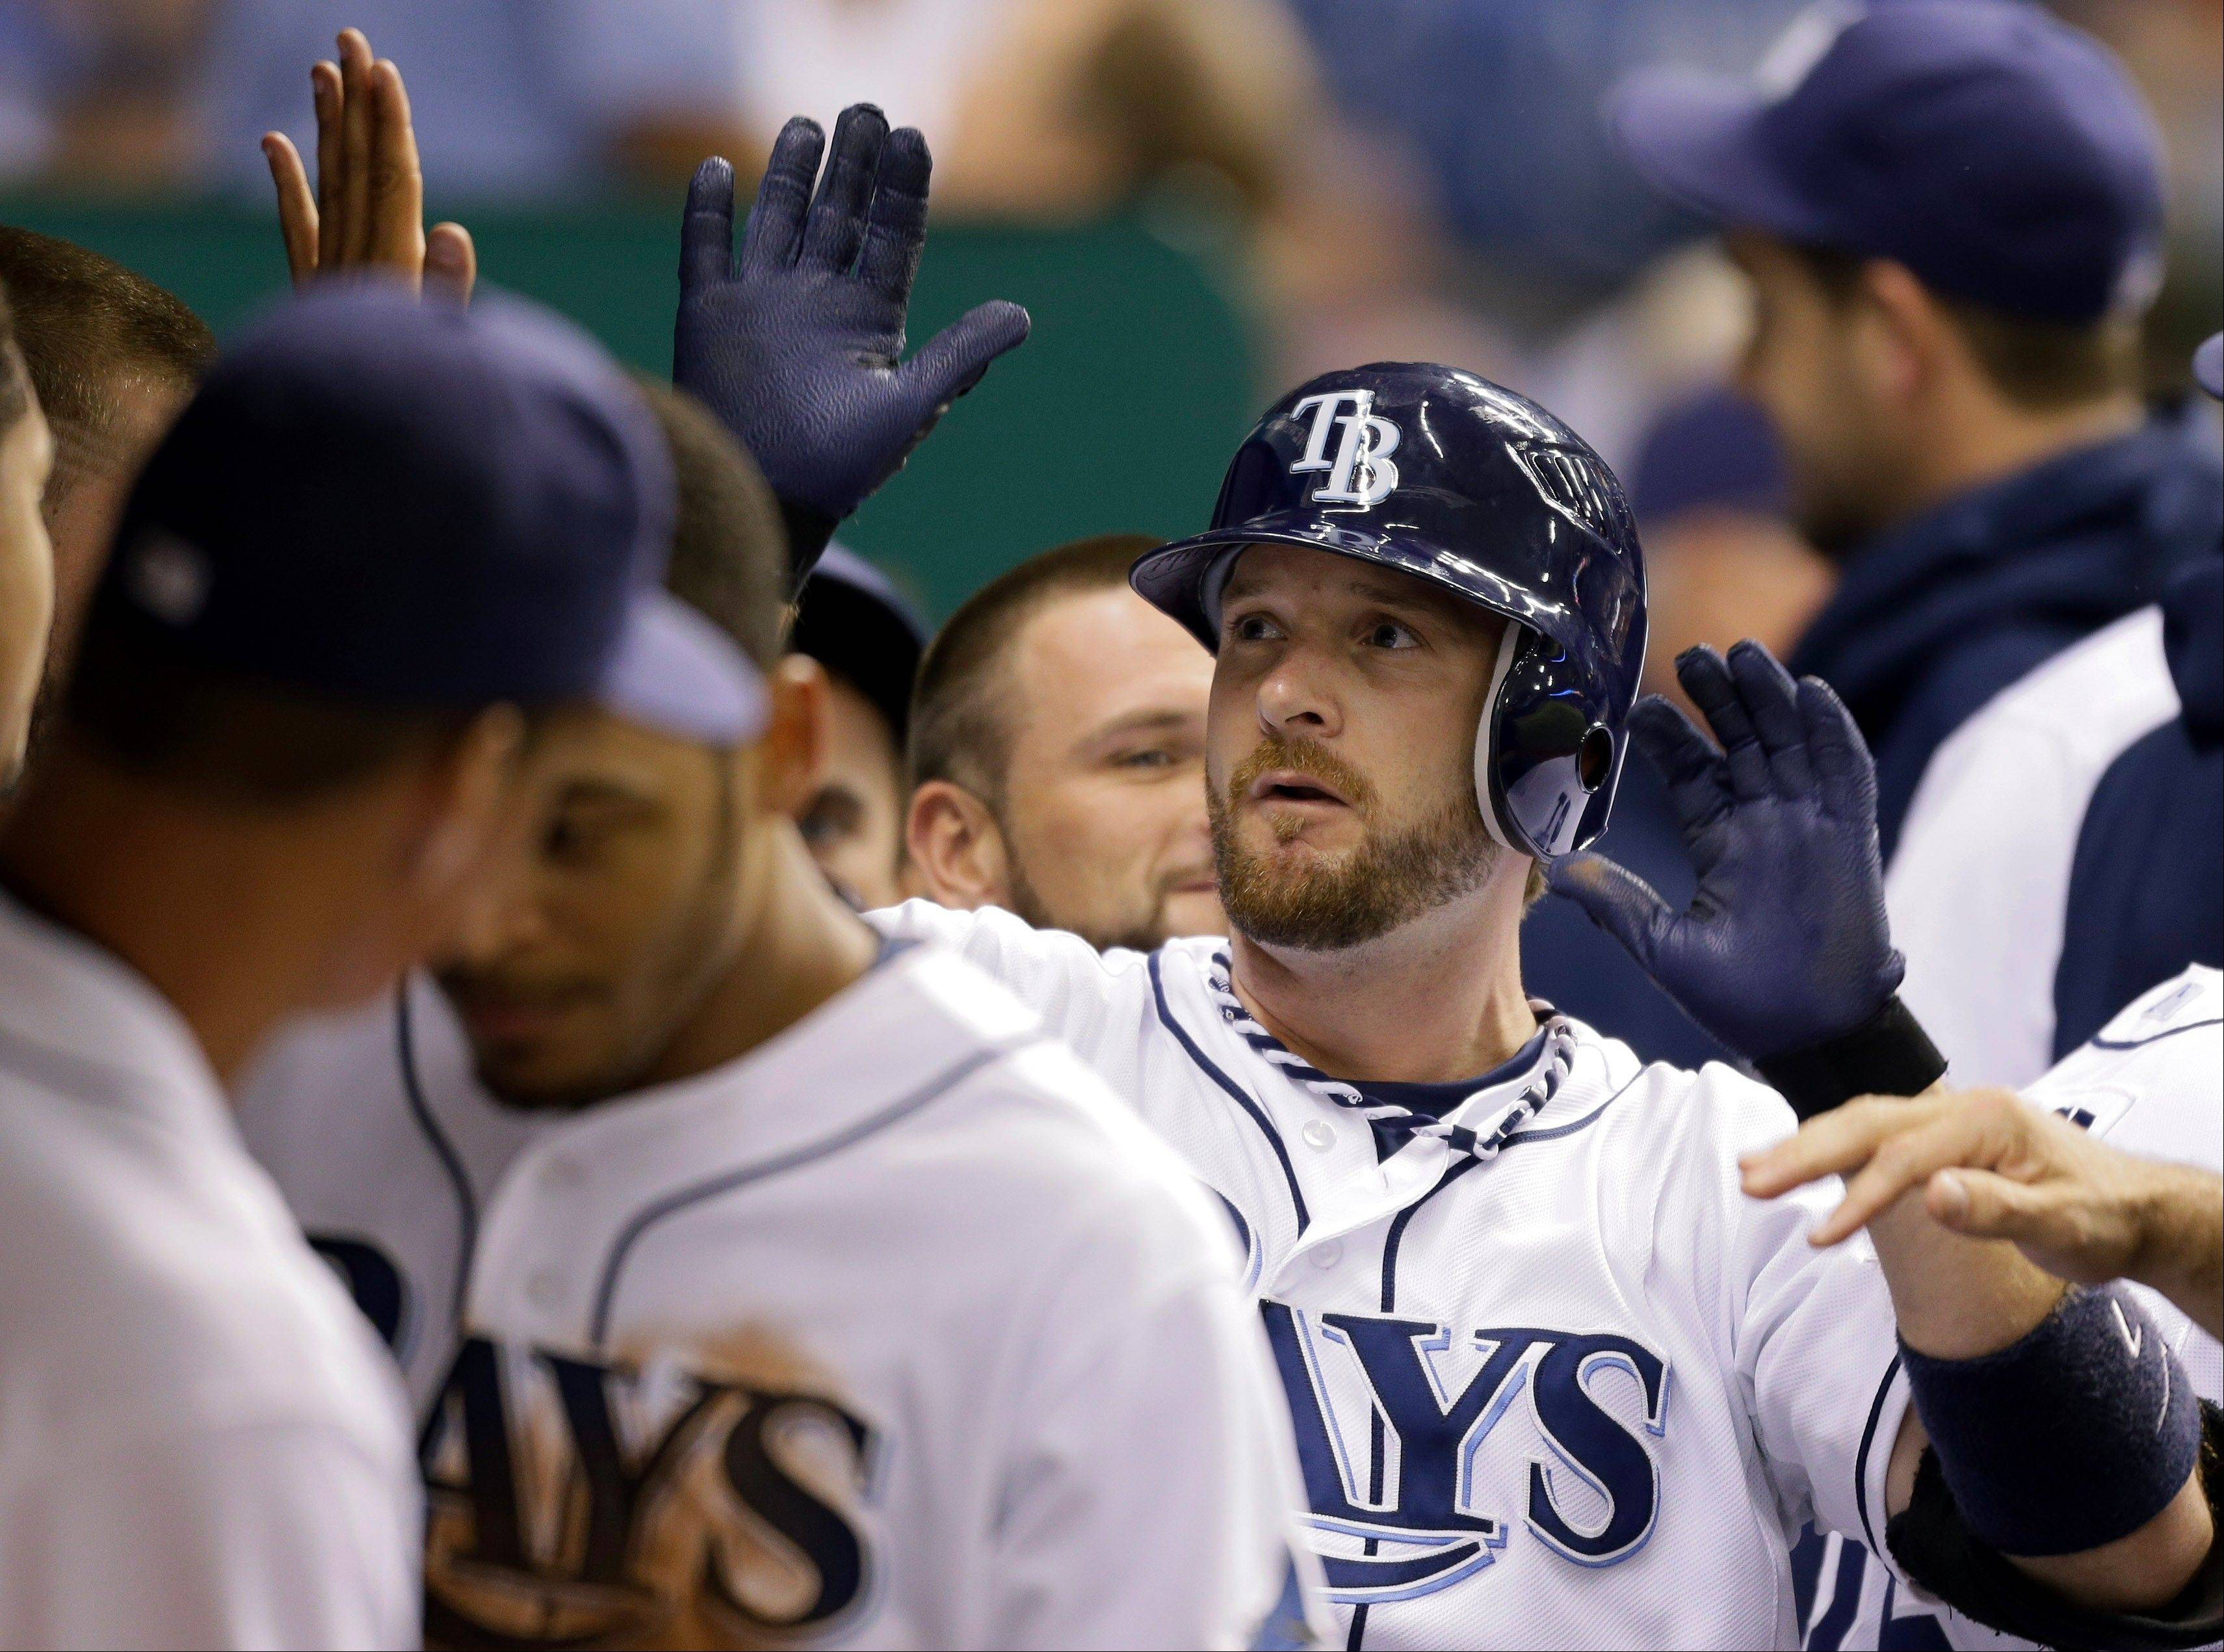 Jeff Keppinger of the Tampa Bay Rays, high-fives teammates after blasting a home run against Boston last season. CBS is reporting he has agreed to a three-year deal with the White Sox.